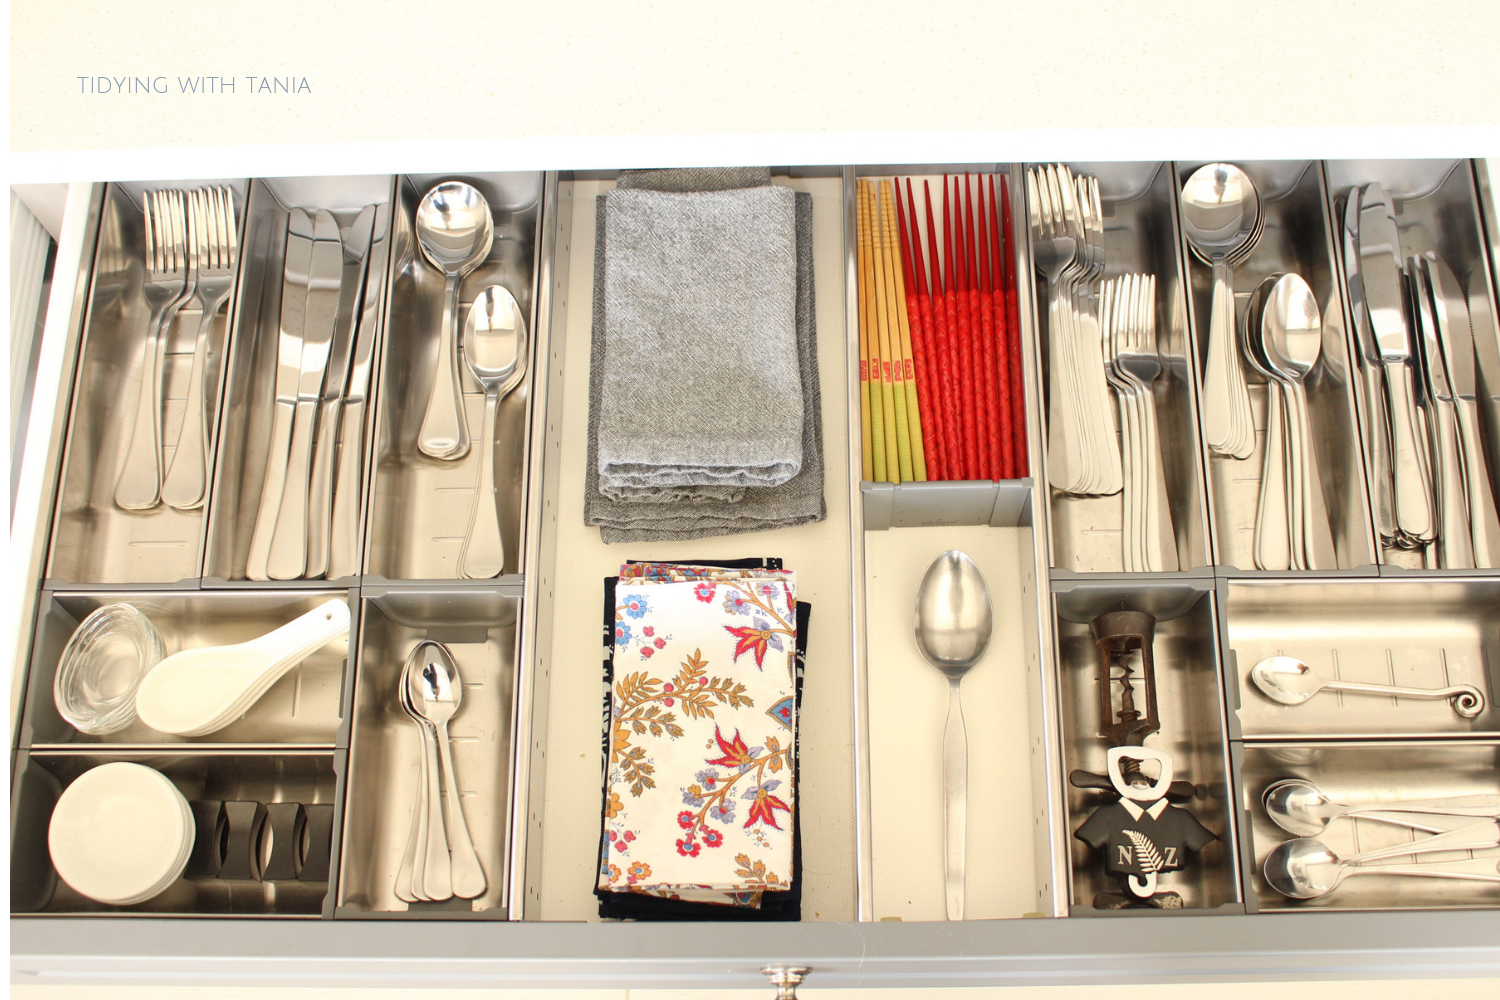 organised kitchen cutlery drawer.png